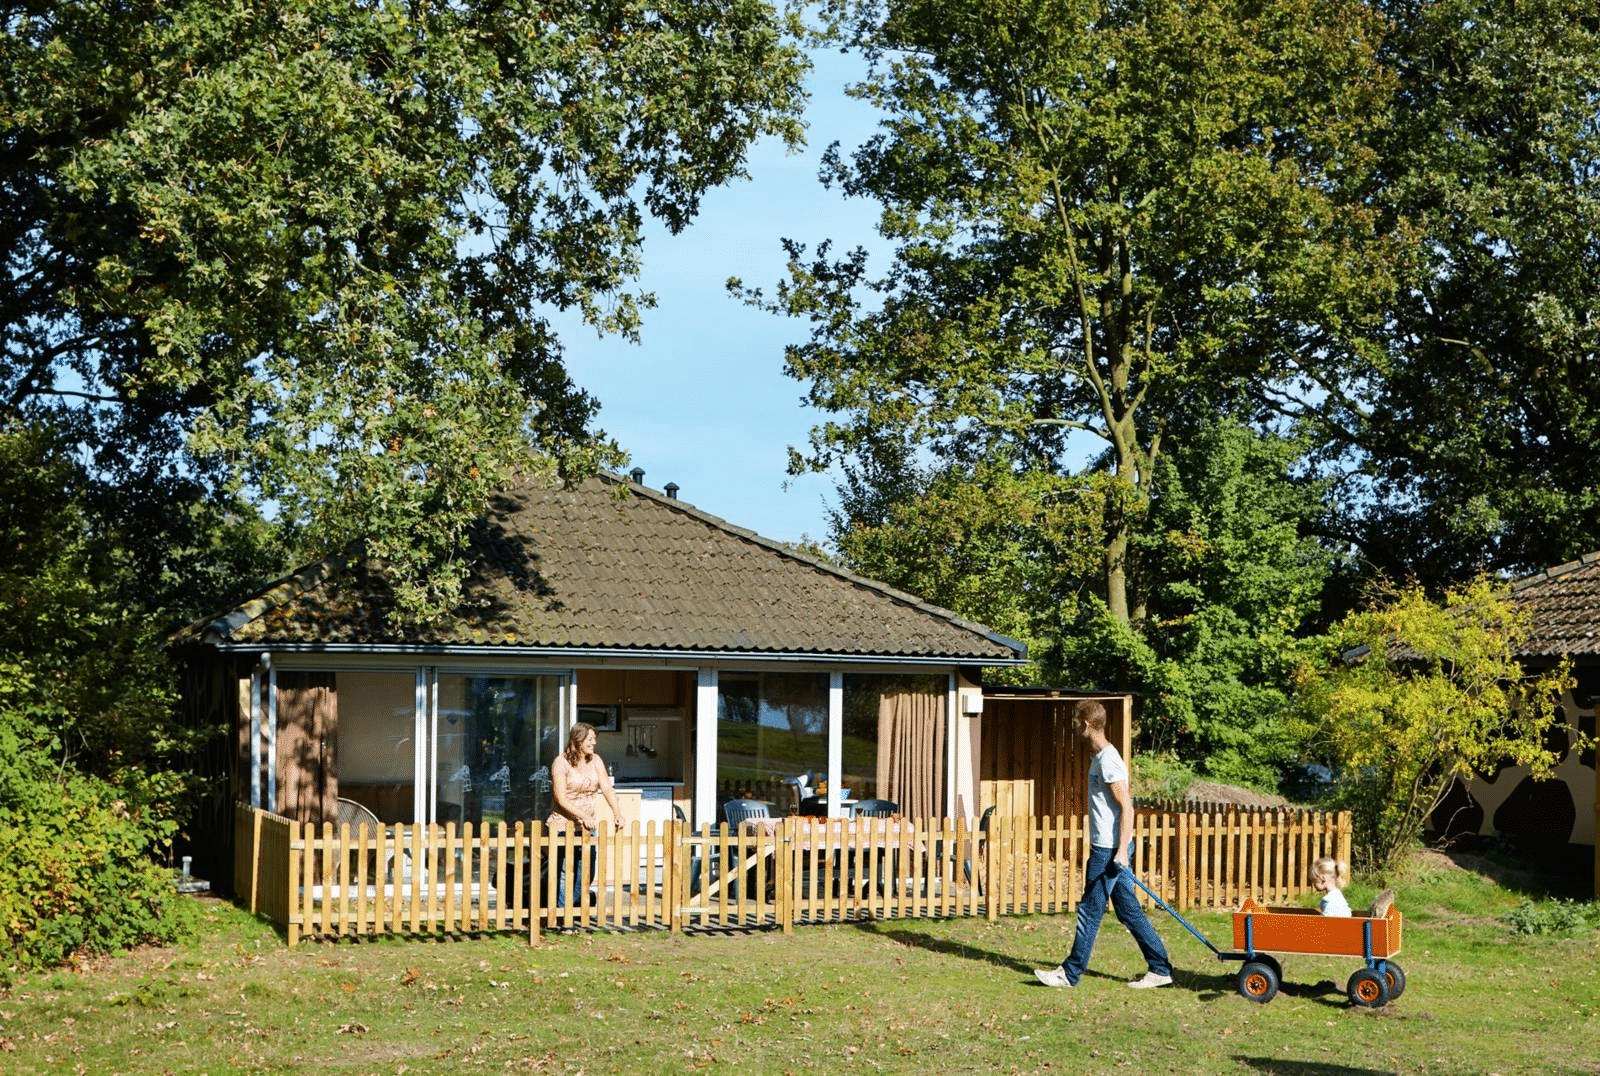 Kids jungalow exterior at Beekse Bergen